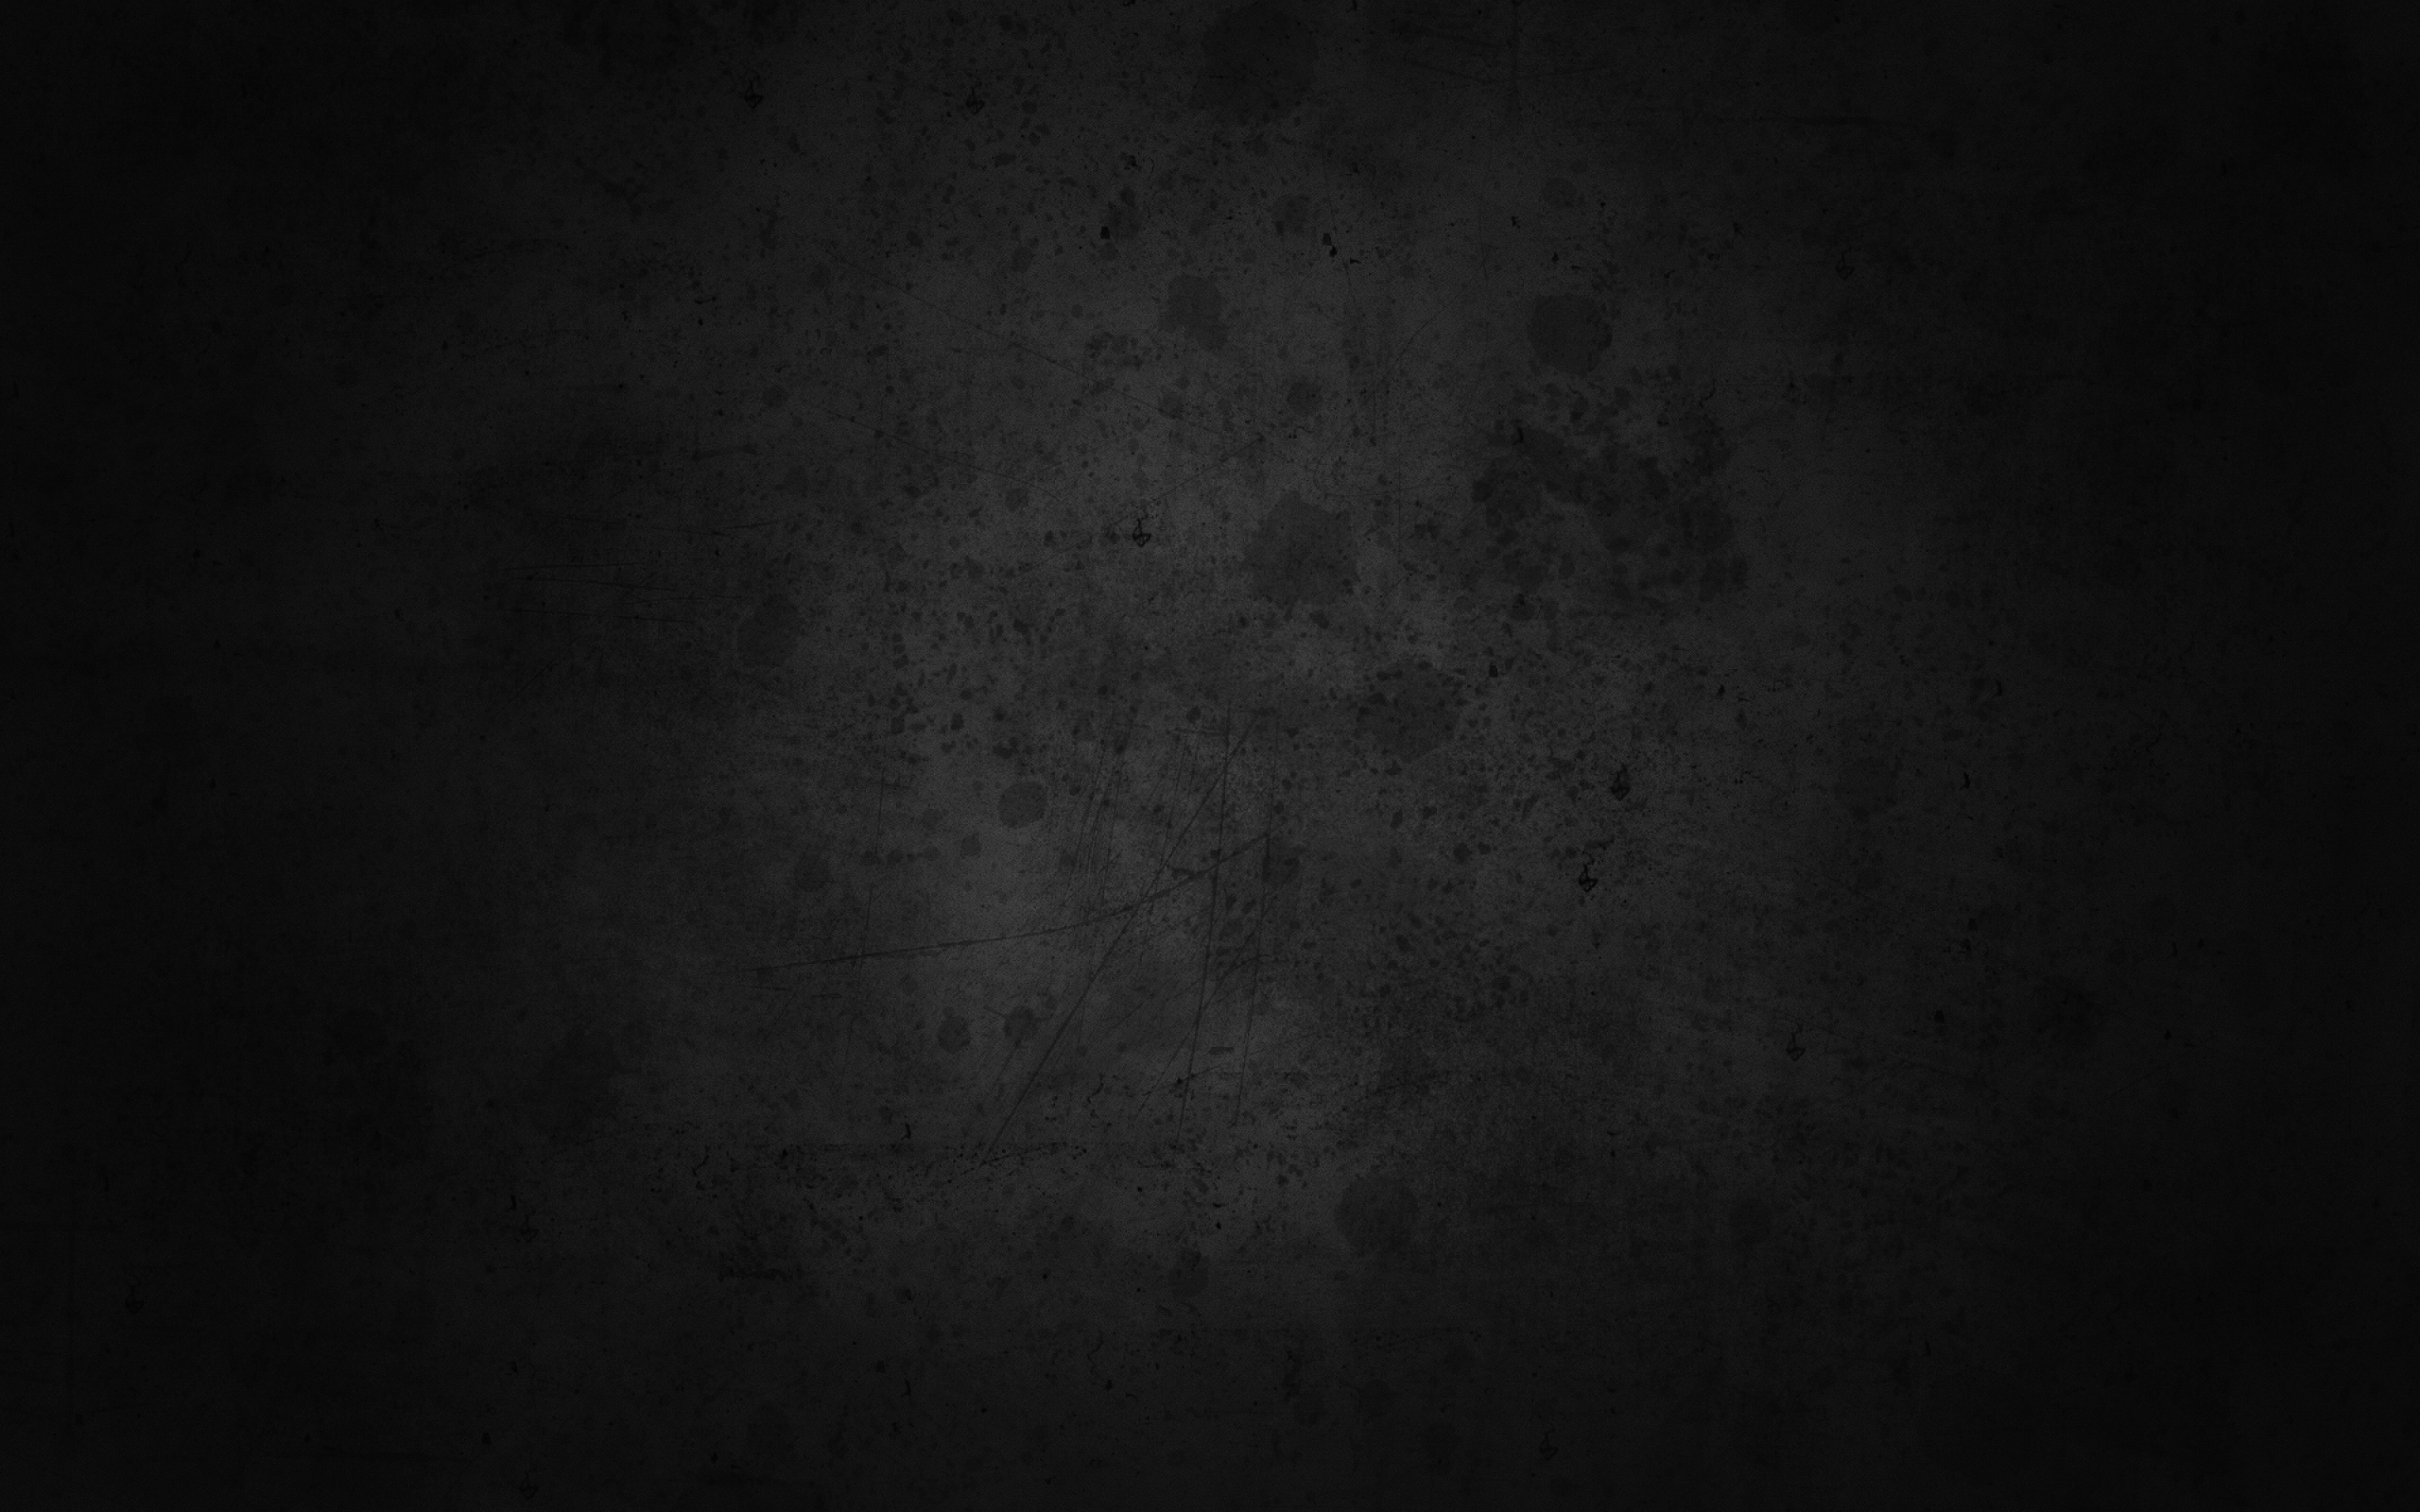 50 black wallpaper in fhd for free download for android Plain white wallpaper for walls